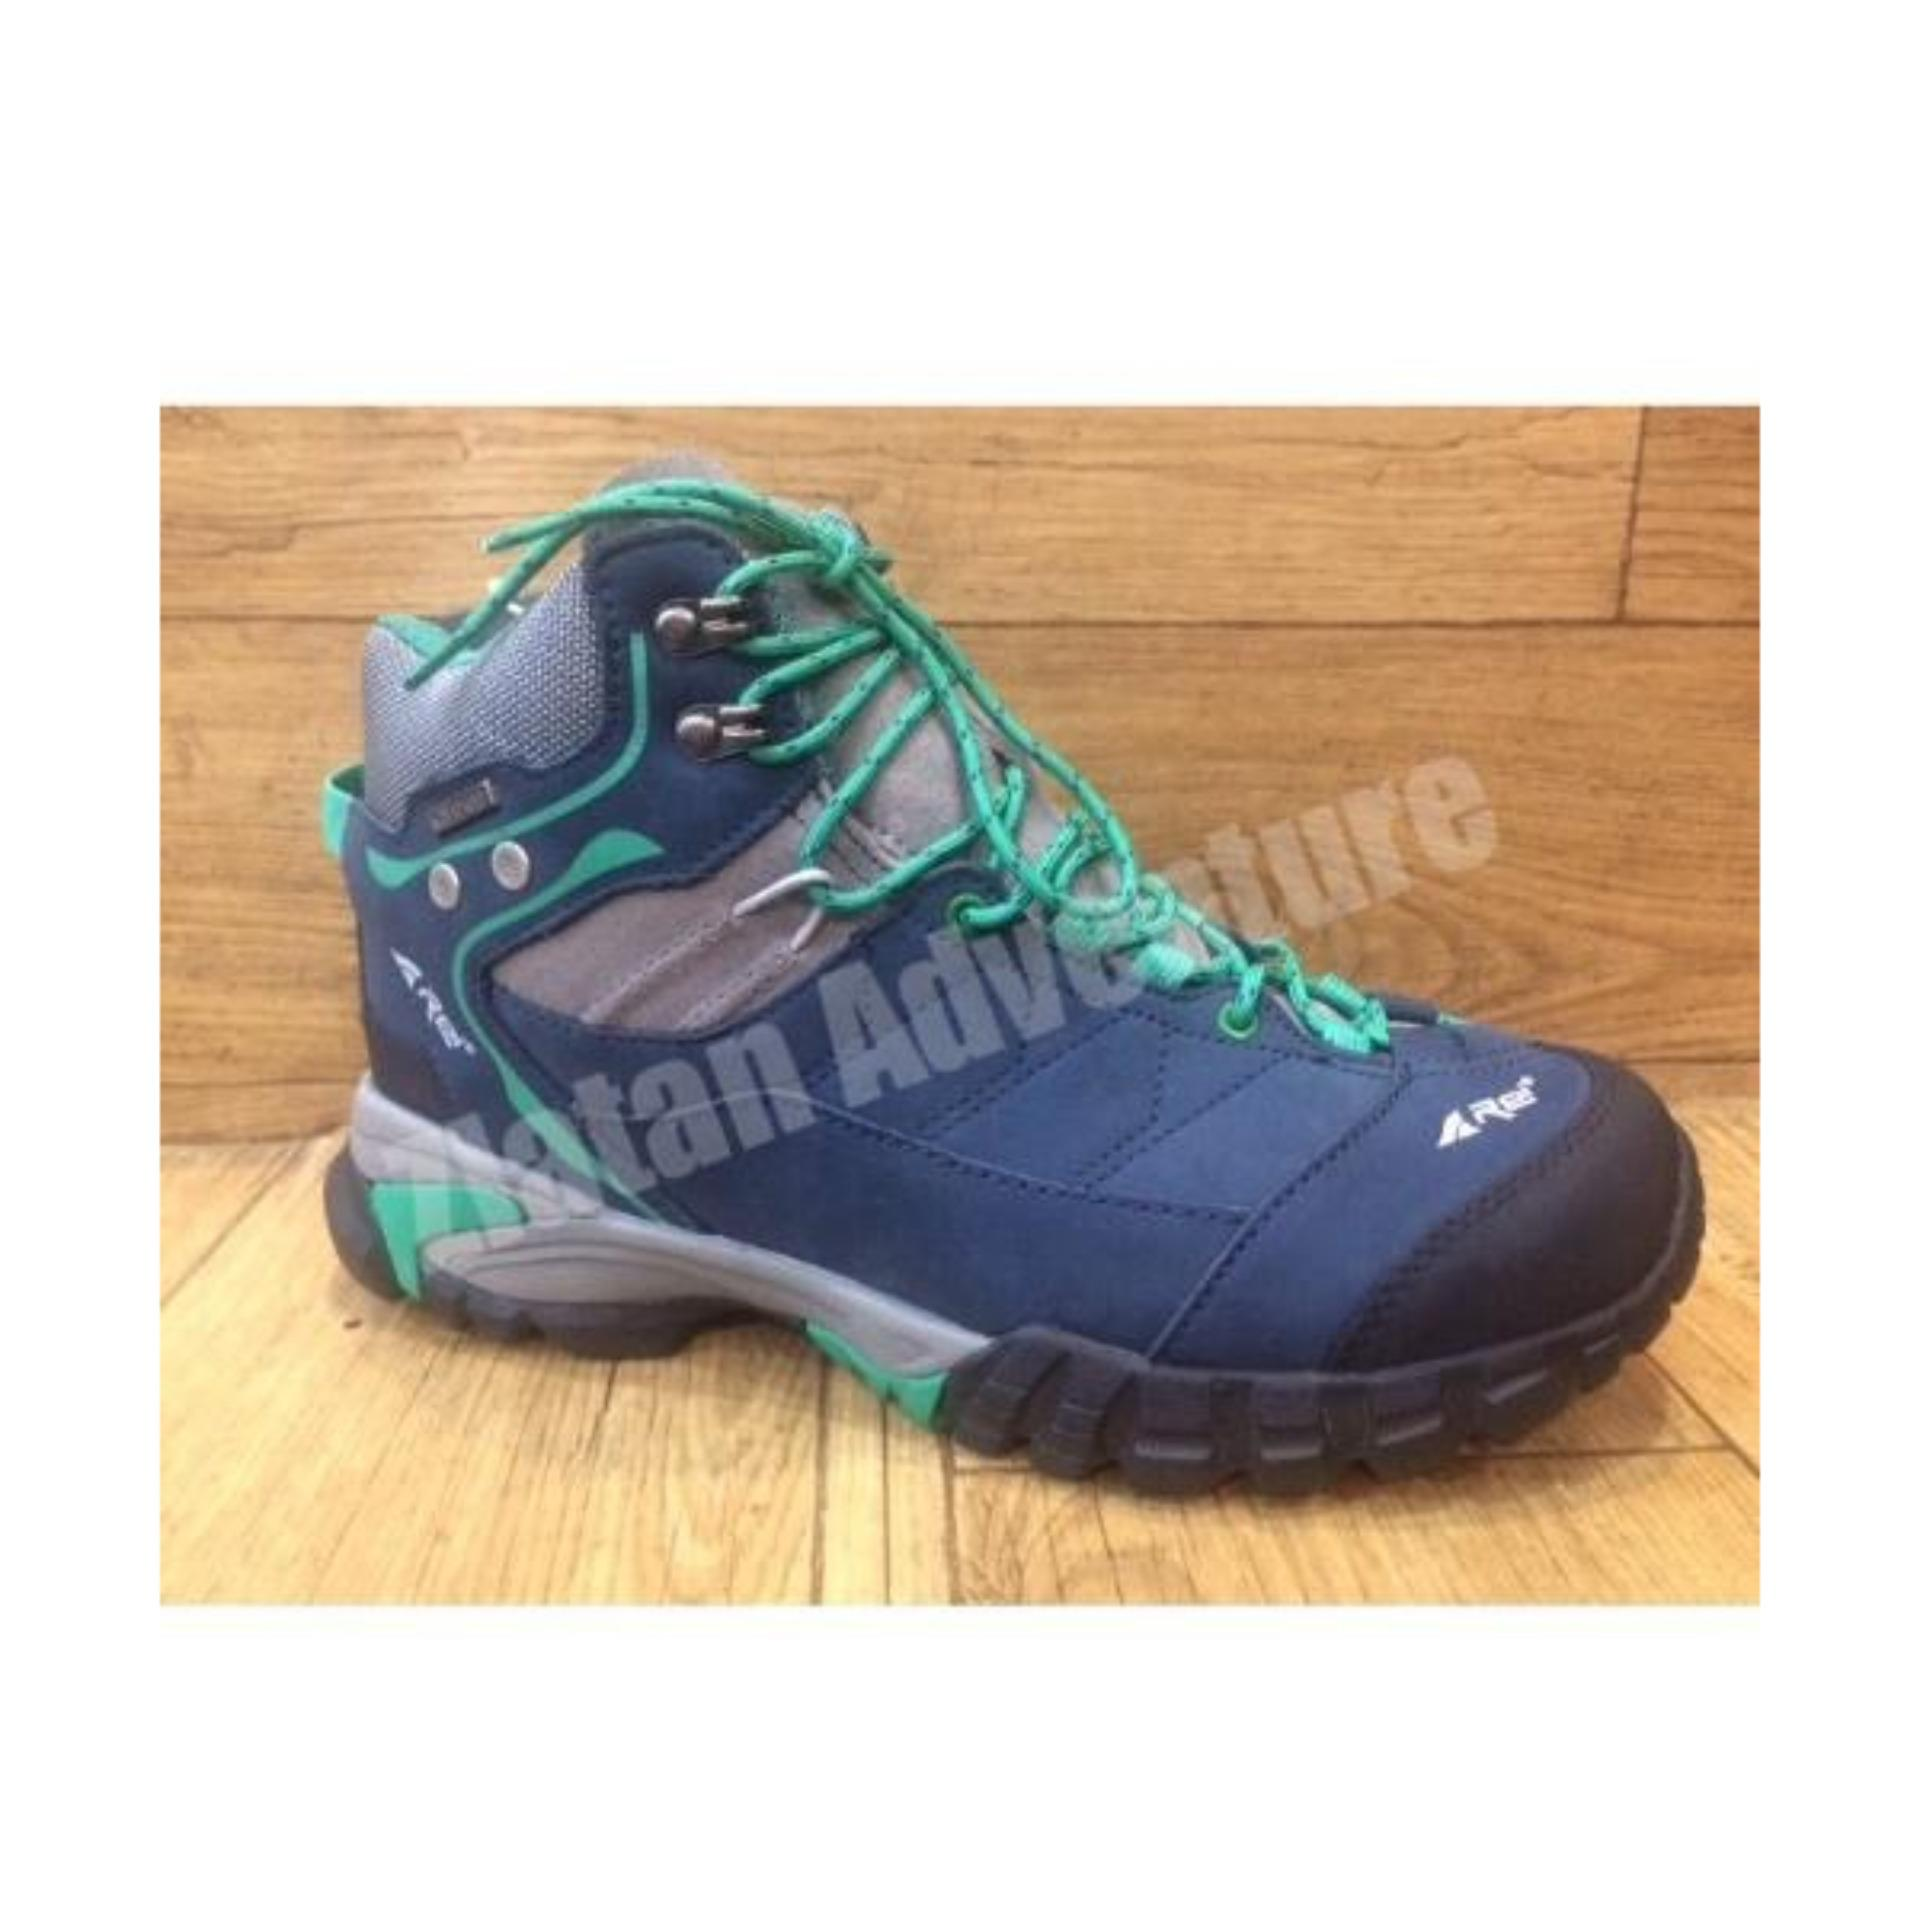 Review Terbaik Sepatu Gunung Hiking Waterproof Rei Adventure Silverback Zatan Adventure Store